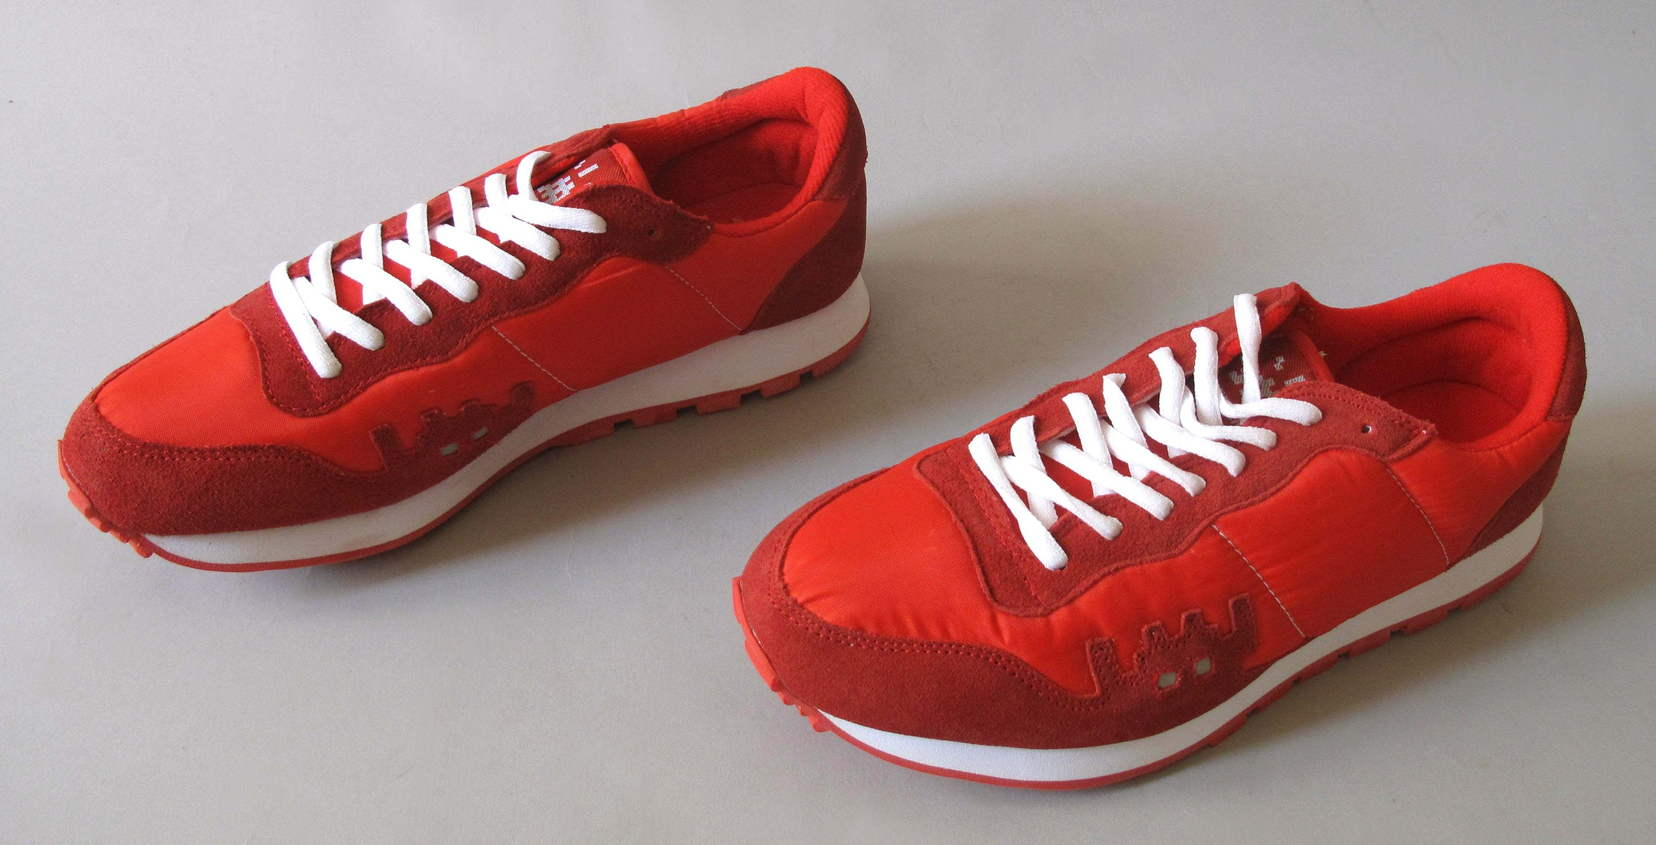 Invader-A pair of red sneakers. Size 42.5-